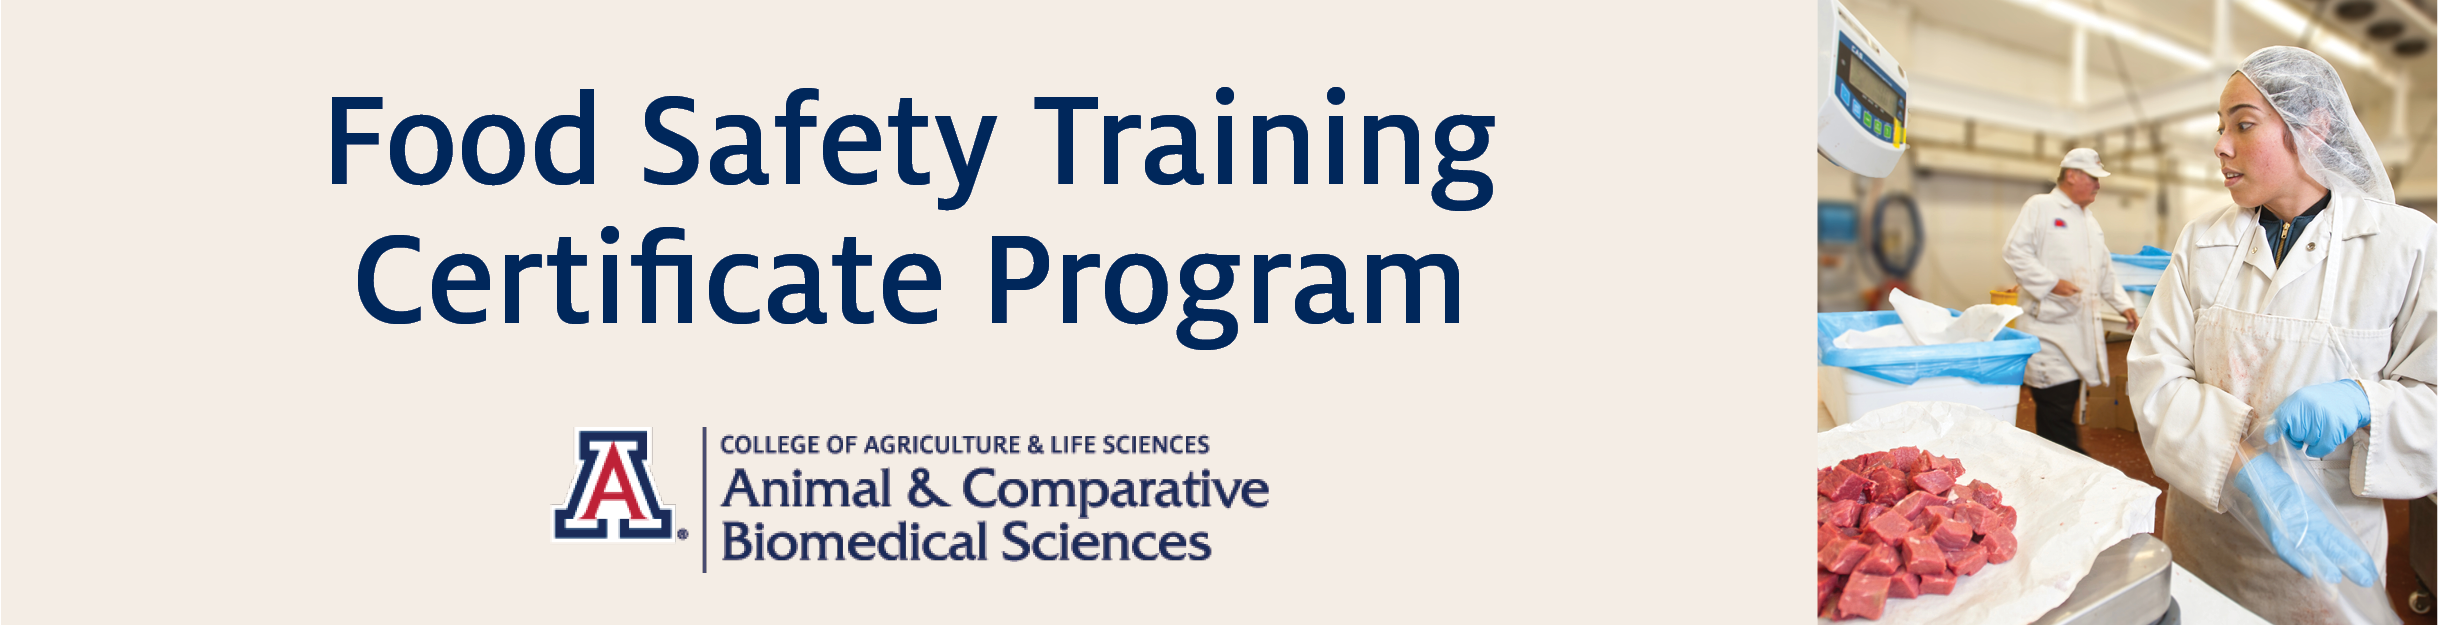 Food Safety Training Program logo